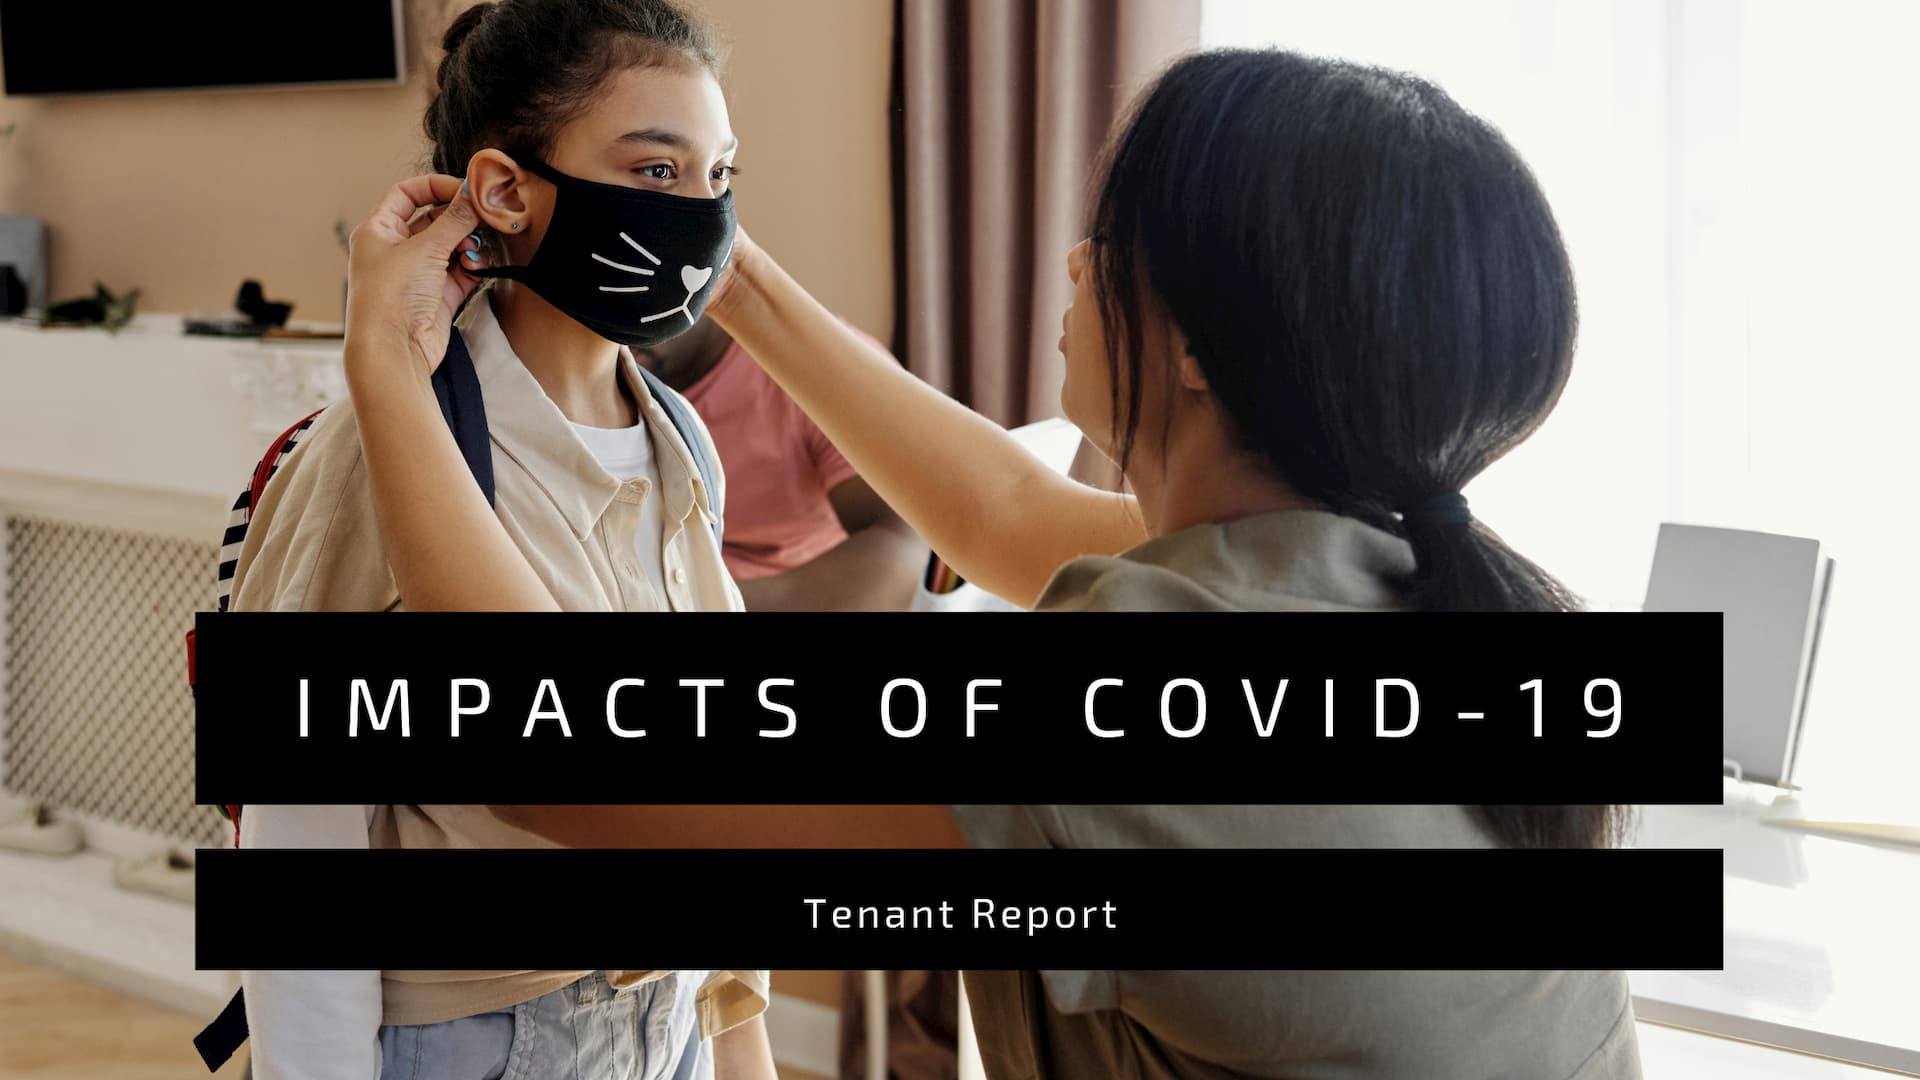 Tenant-Report-Impacts-of-COVID-19-resized